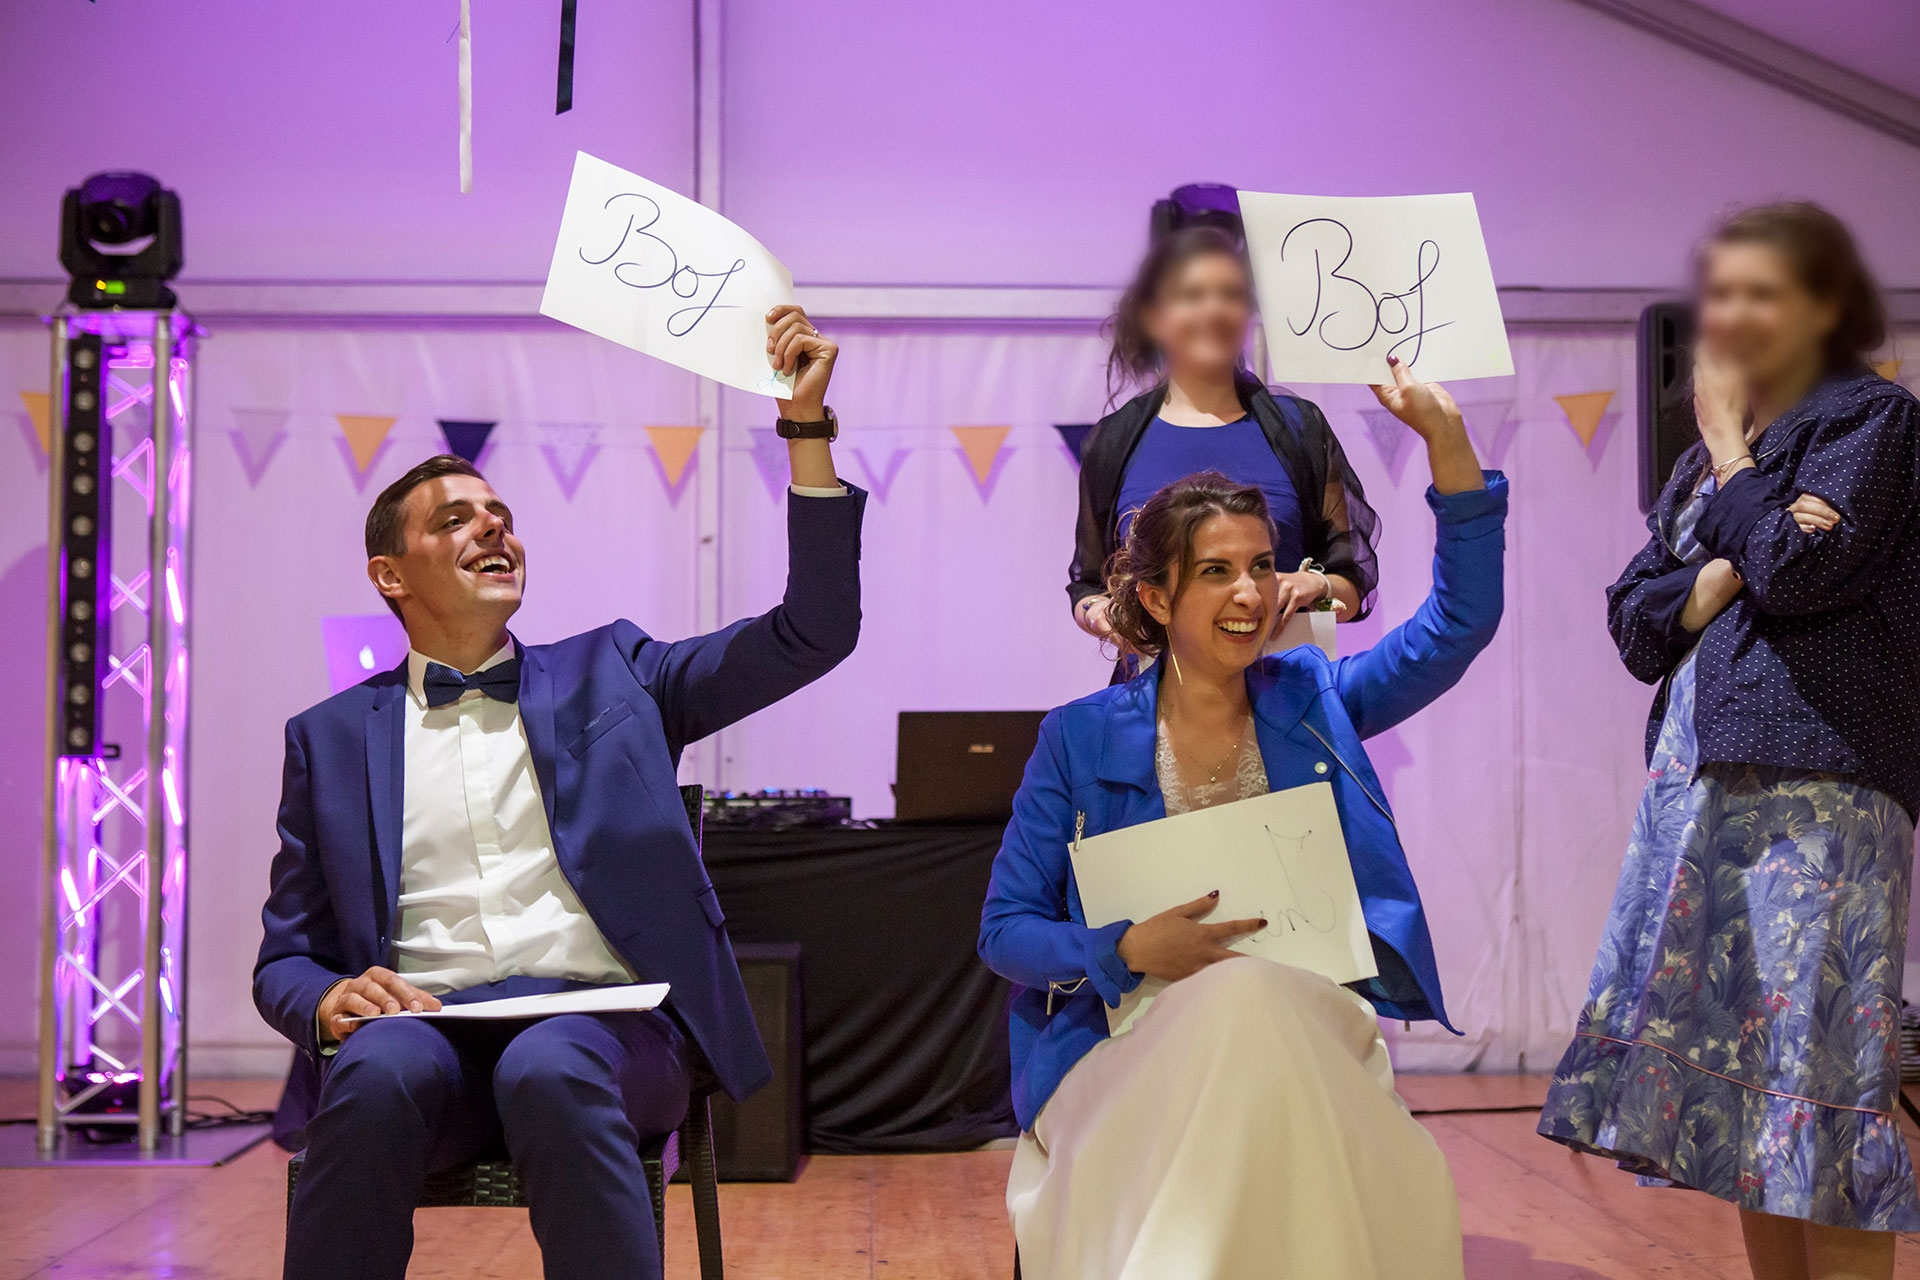 particuliers-evenements-mariages-oui-clementine&alexandre-69